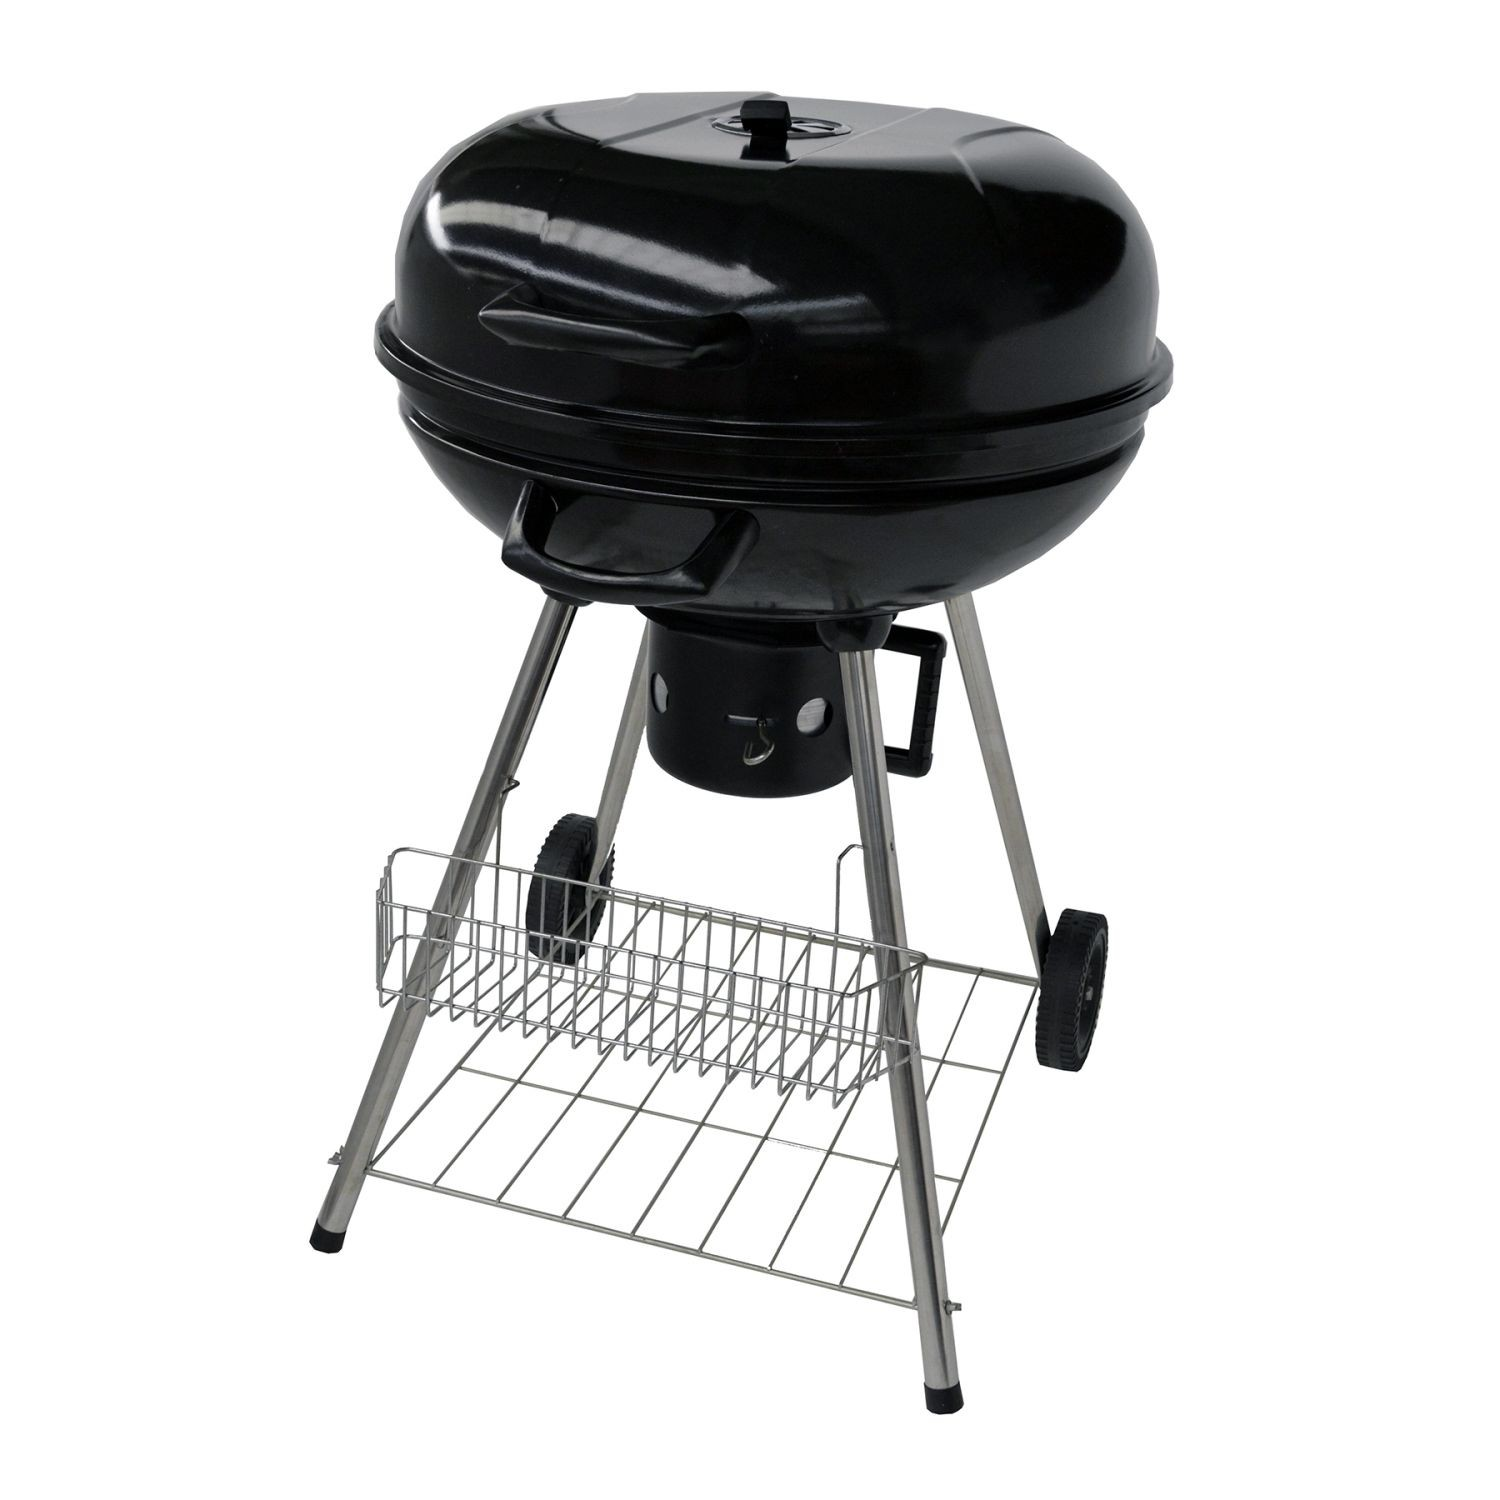 pluton barbecue charbon 56cm barbecues braseros am nagement ext rieur. Black Bedroom Furniture Sets. Home Design Ideas